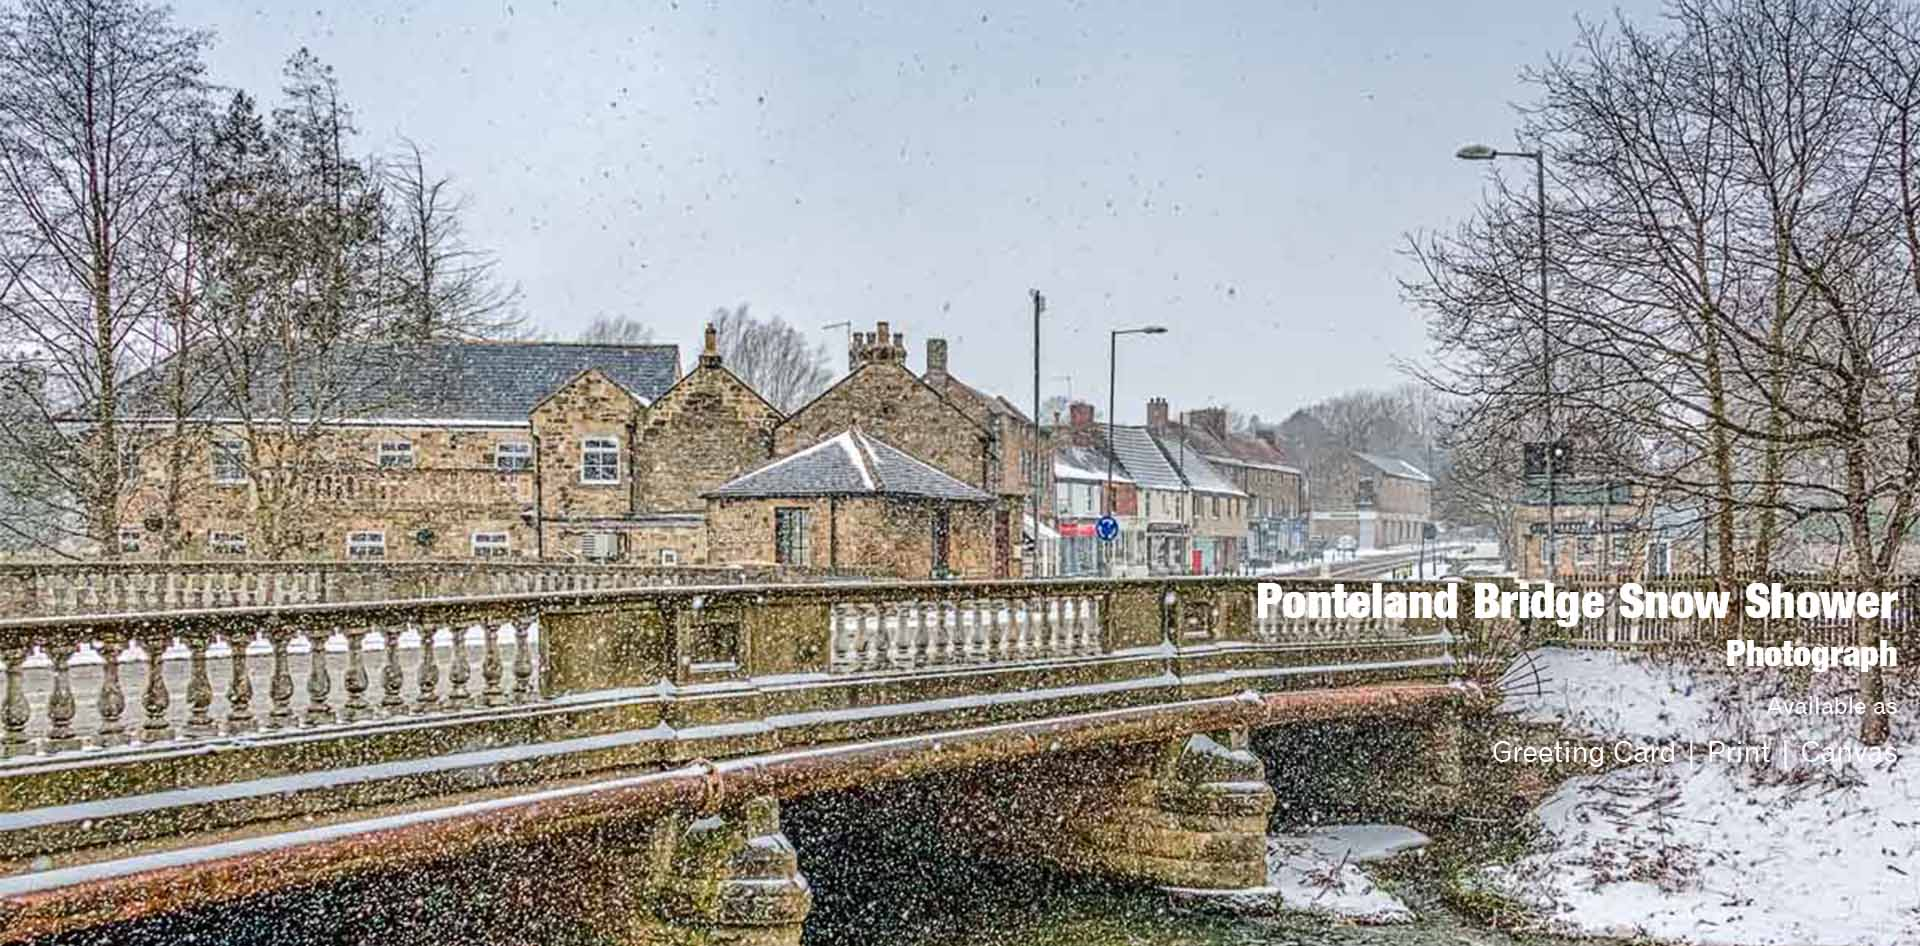 Ponteland Bridge Snow Shower | Ponteland Print & Publishing